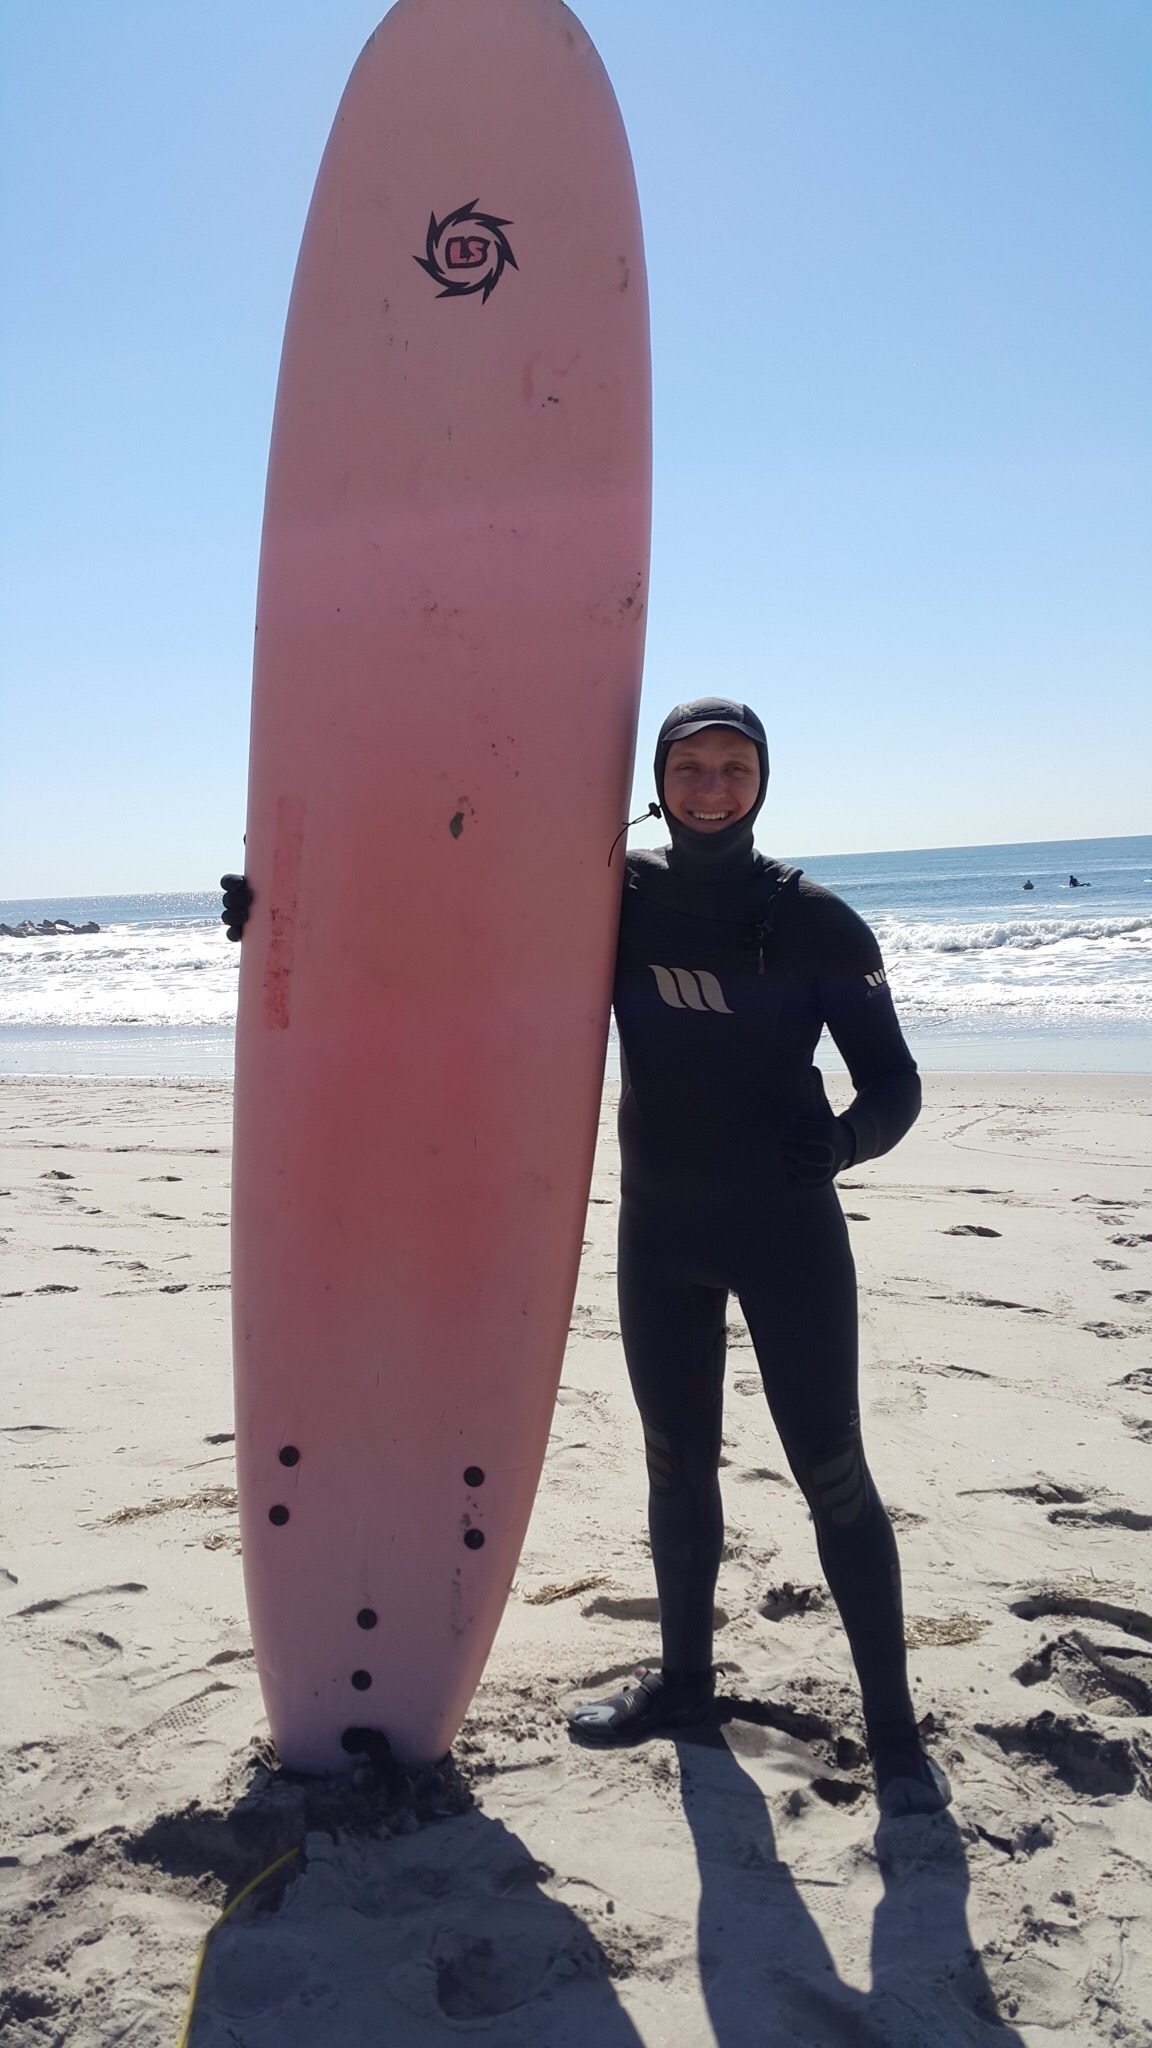 Perica, our loveable, if a bit goofy surfer